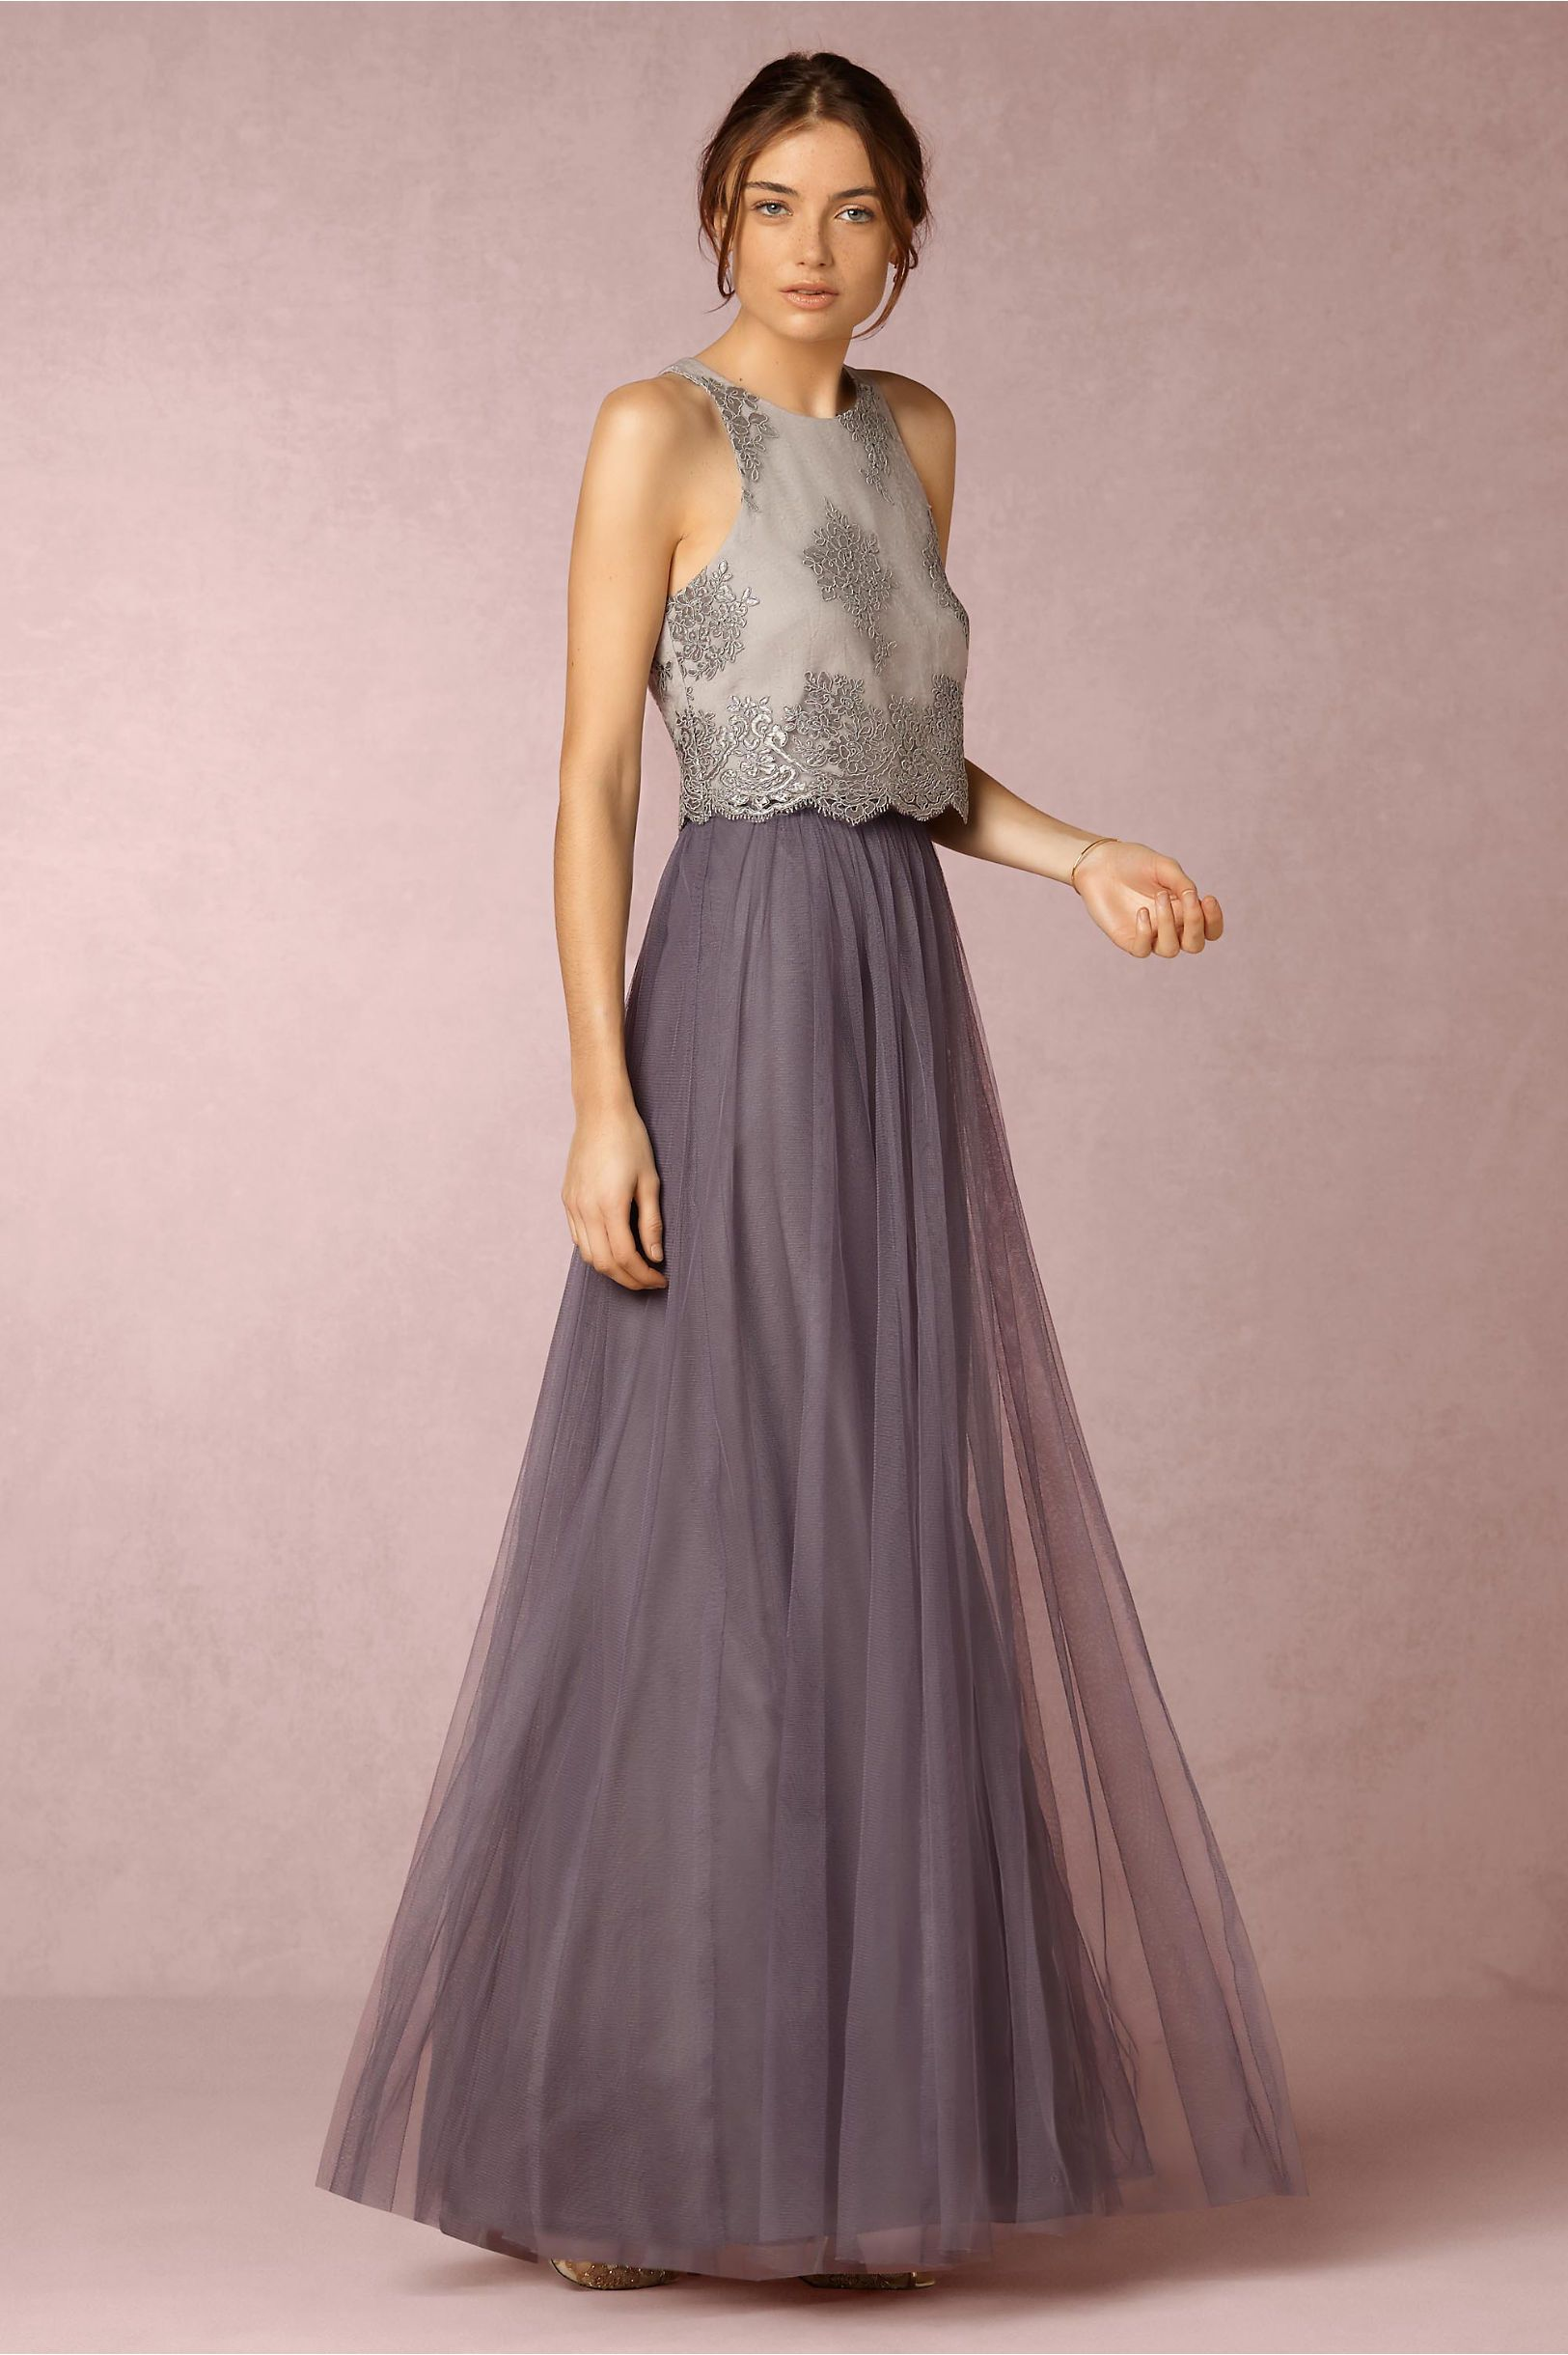 Bhldn louise tulle skirt bridesmaid outfit inspiration jake bhldn louise tulle skirt bridesmaid outfit inspiration ombrellifo Choice Image